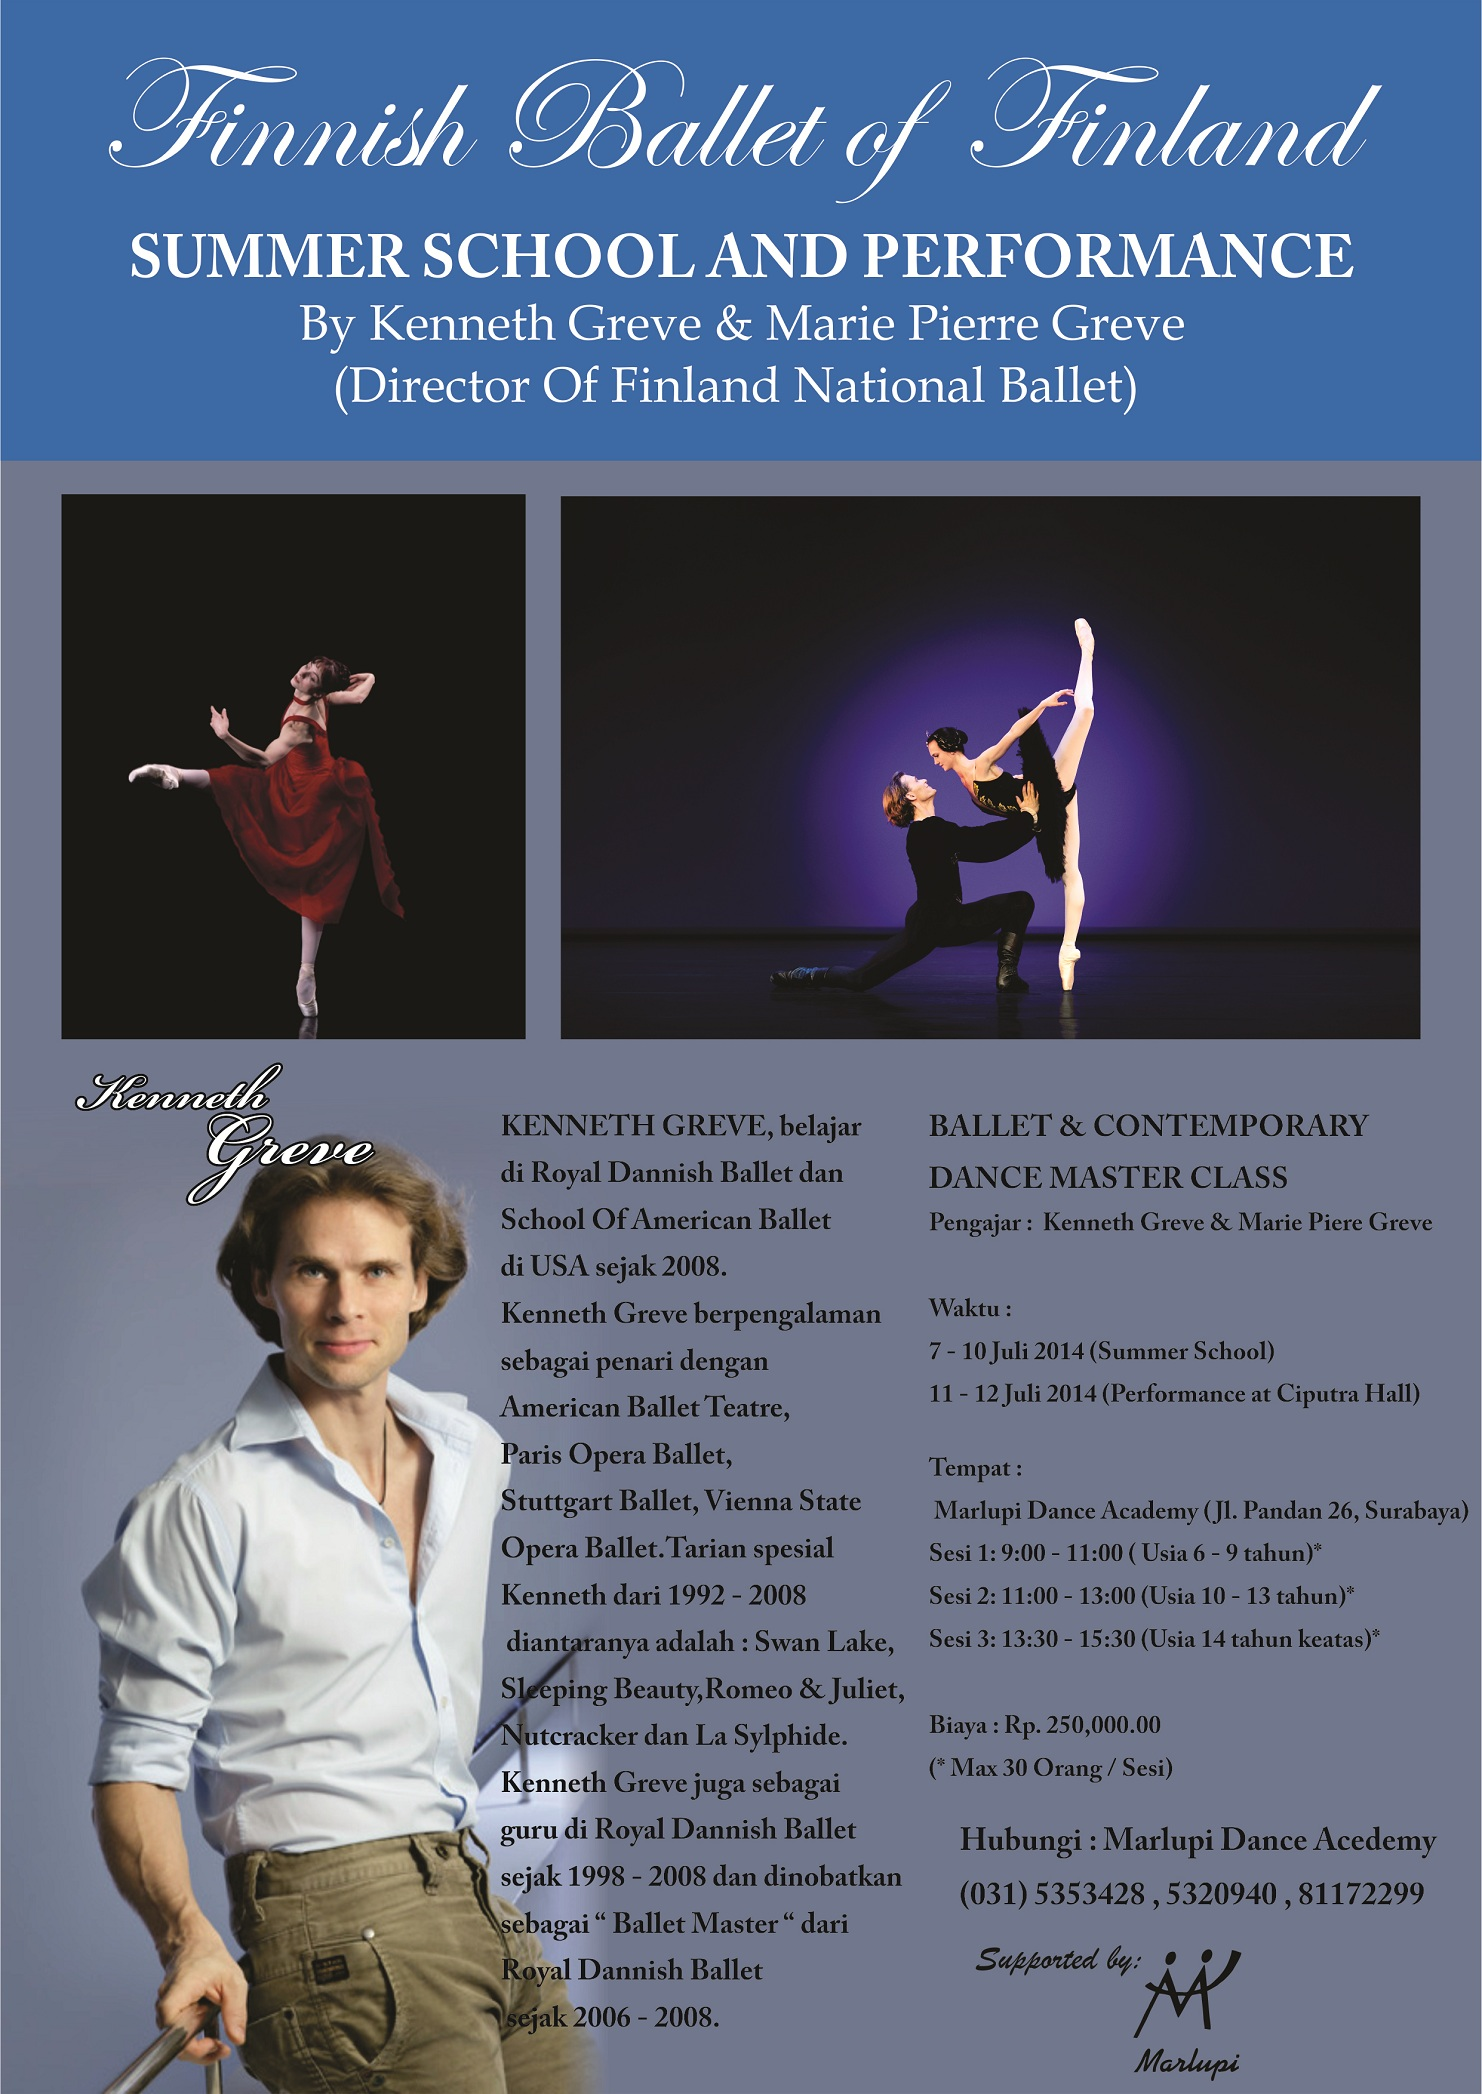 BALLET SUMMER SCHOOL by Kenneth Greeve  from FINLAND NATIONAL BALLET